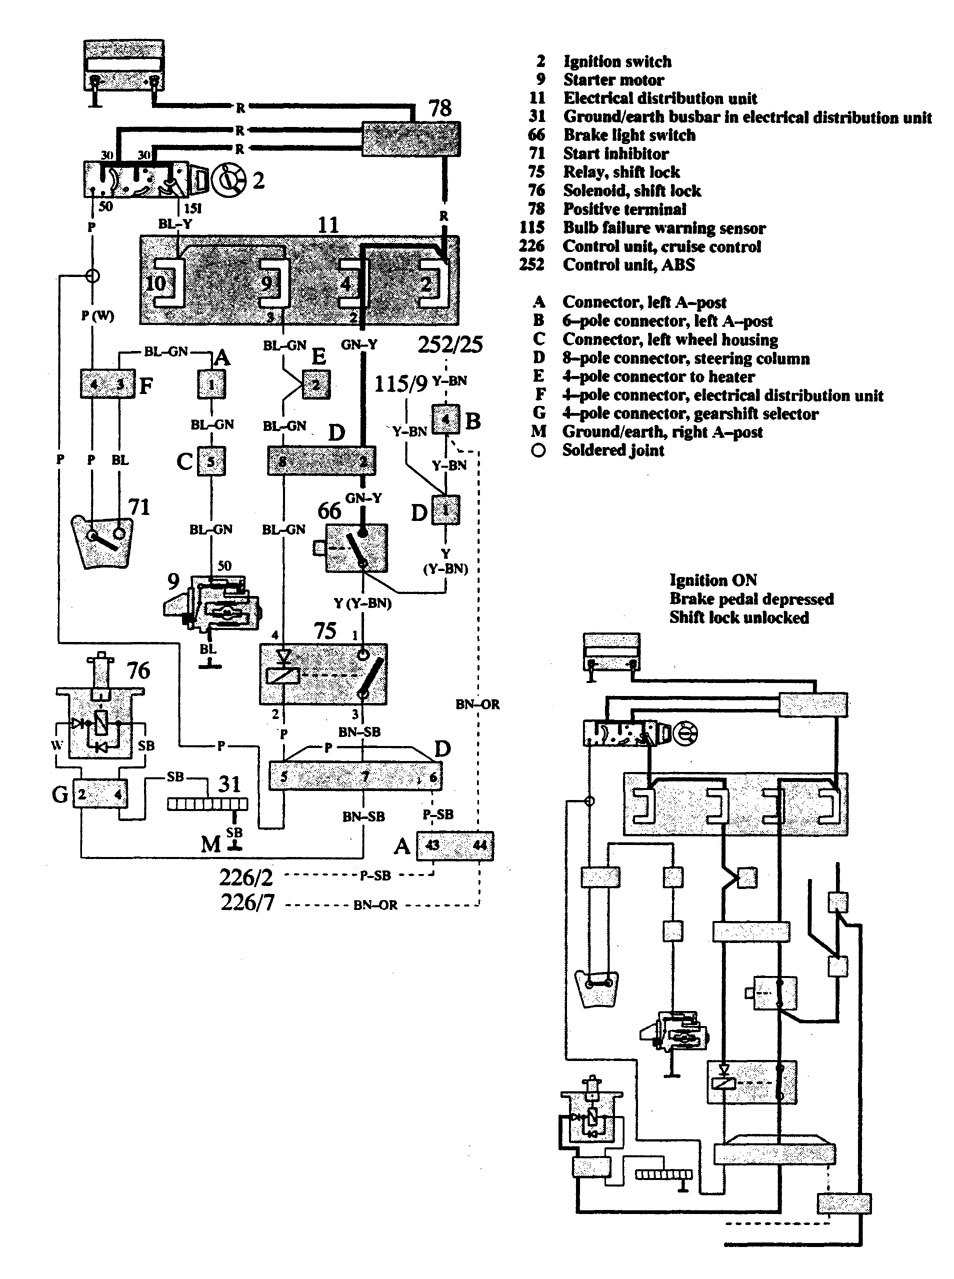 DIAGRAM] Volvo 940 Wiring Diagram FULL Version HD Quality Wiring Diagram -  ADIAGRAM.IPSSARSANPELLEGRINO.IT | Volvo 940 Ac Wiring Diagram |  | Diagram Database - ipssarsanpellegrino.it